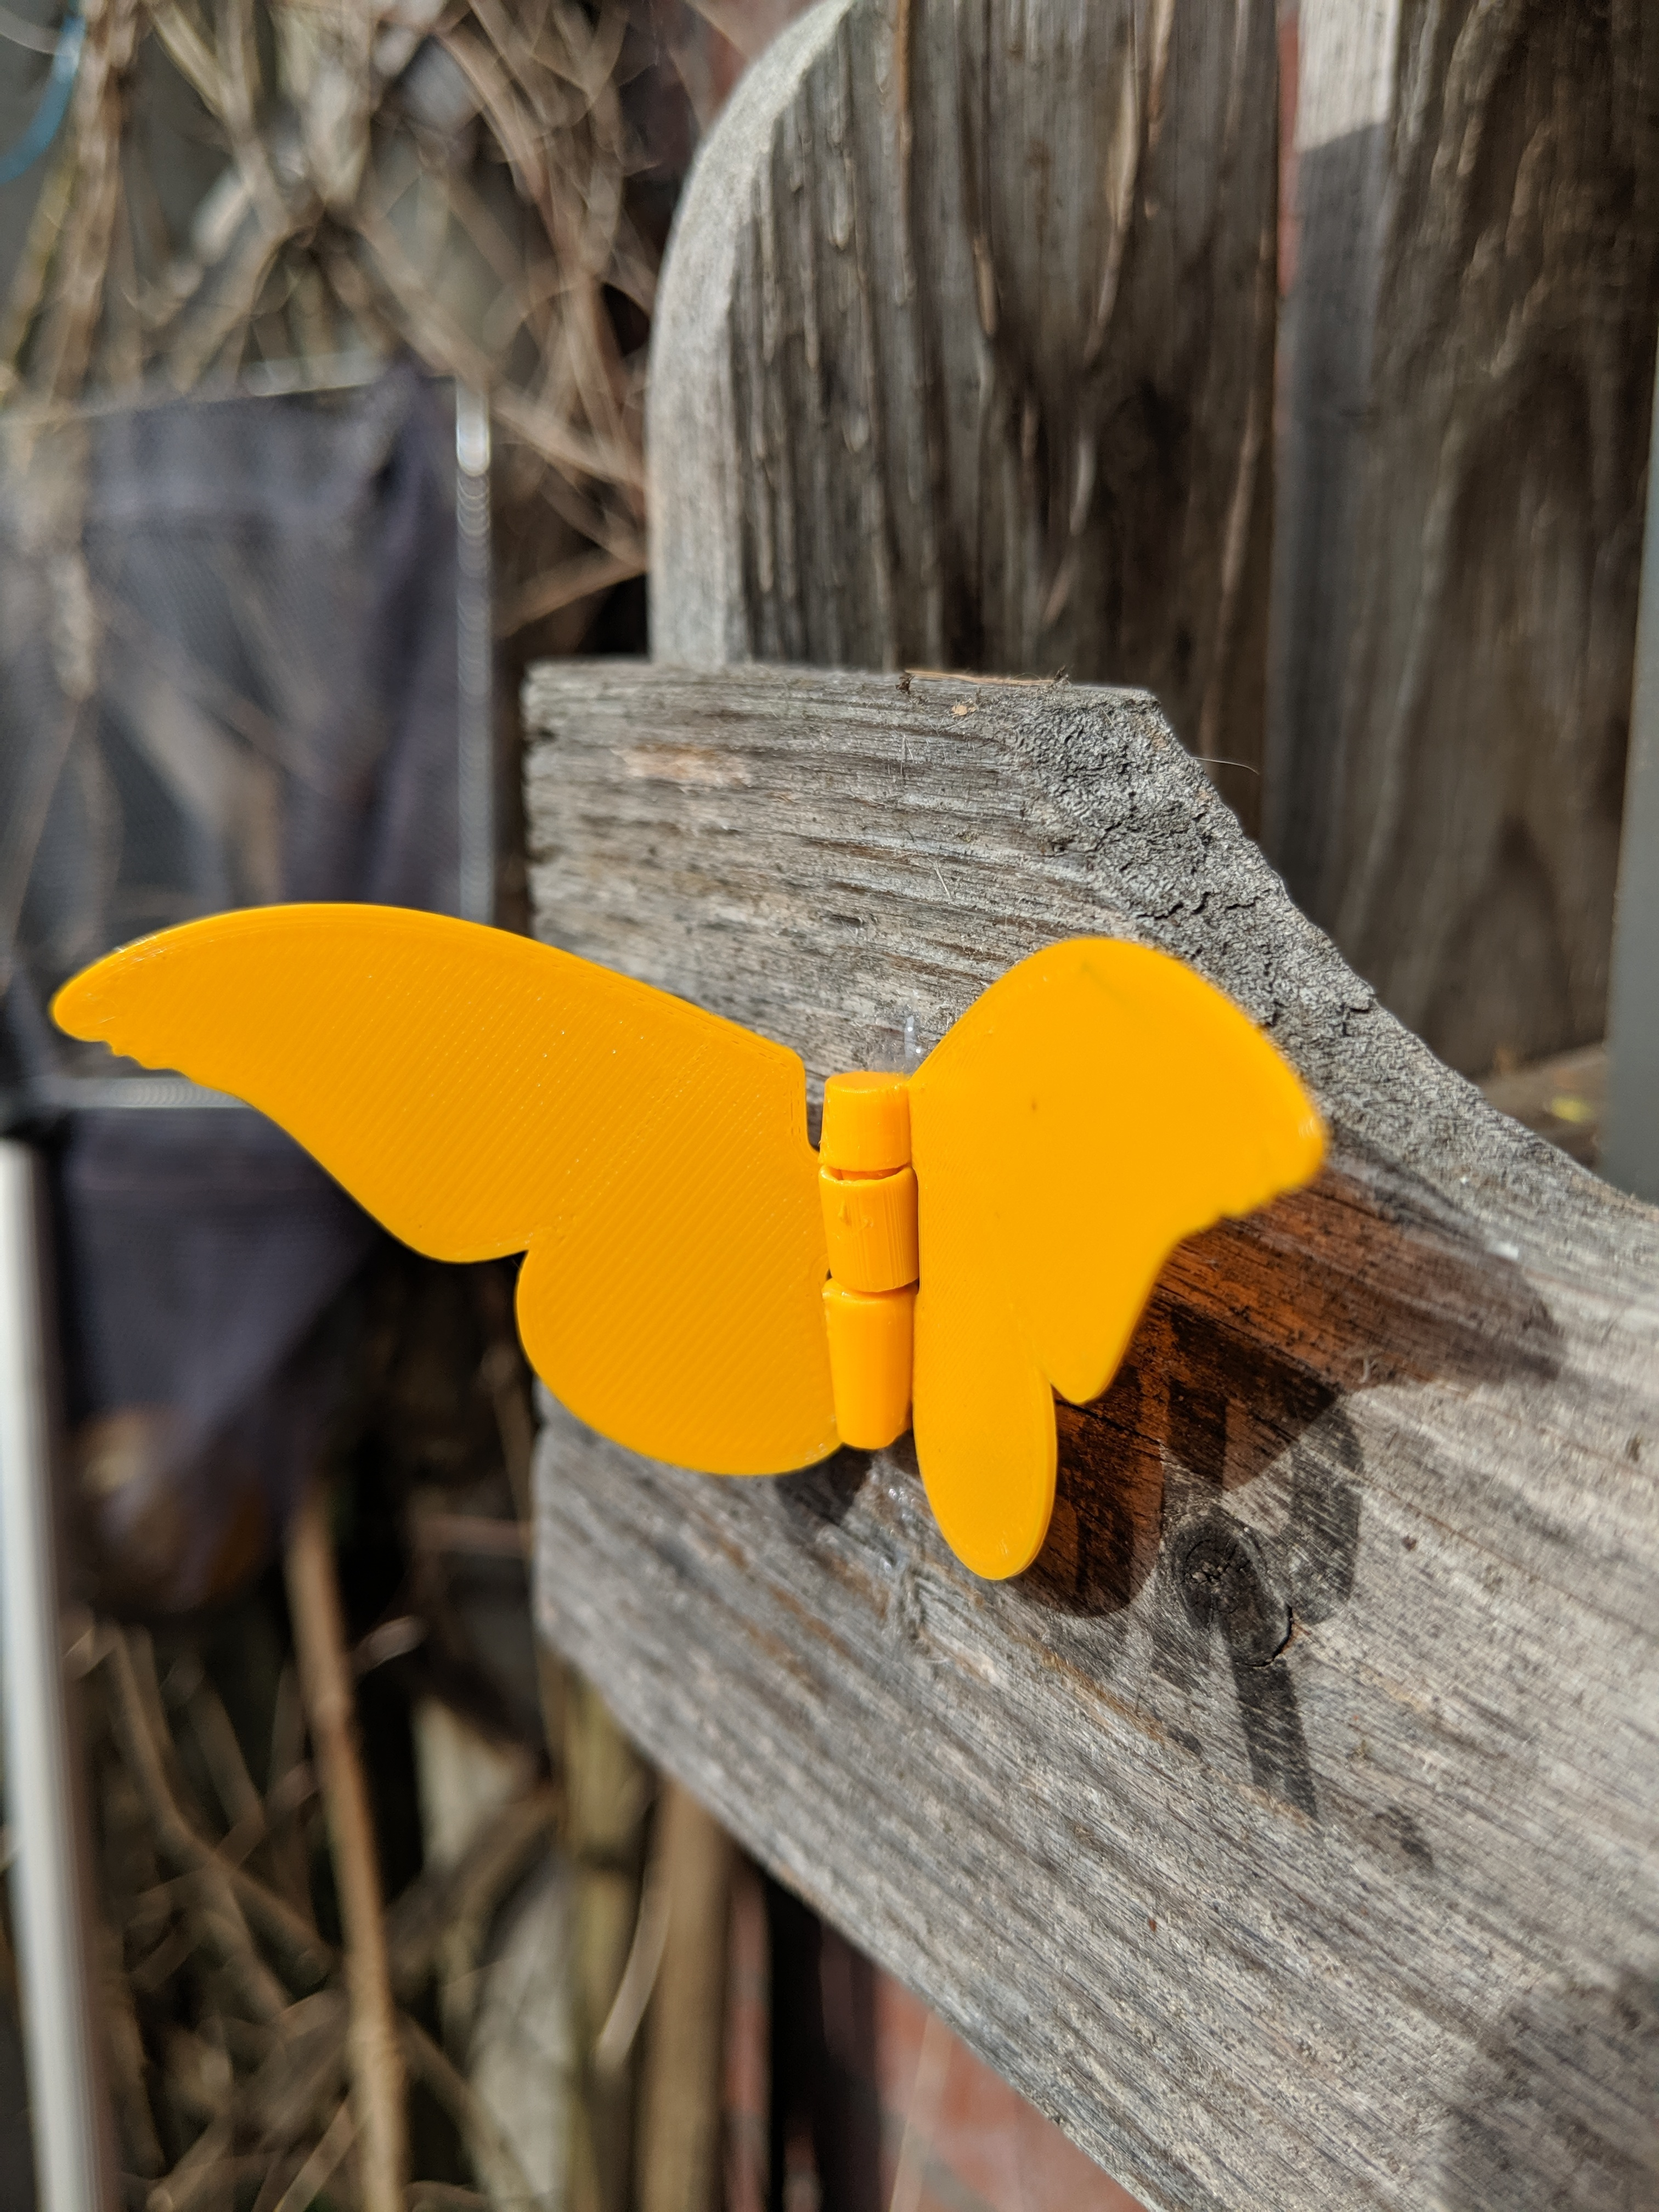 IMG_20190602_172622.jpg Download free STL file Butterfly with a living hinge - (Glue to a thing / wall) • 3D print template, Wilko